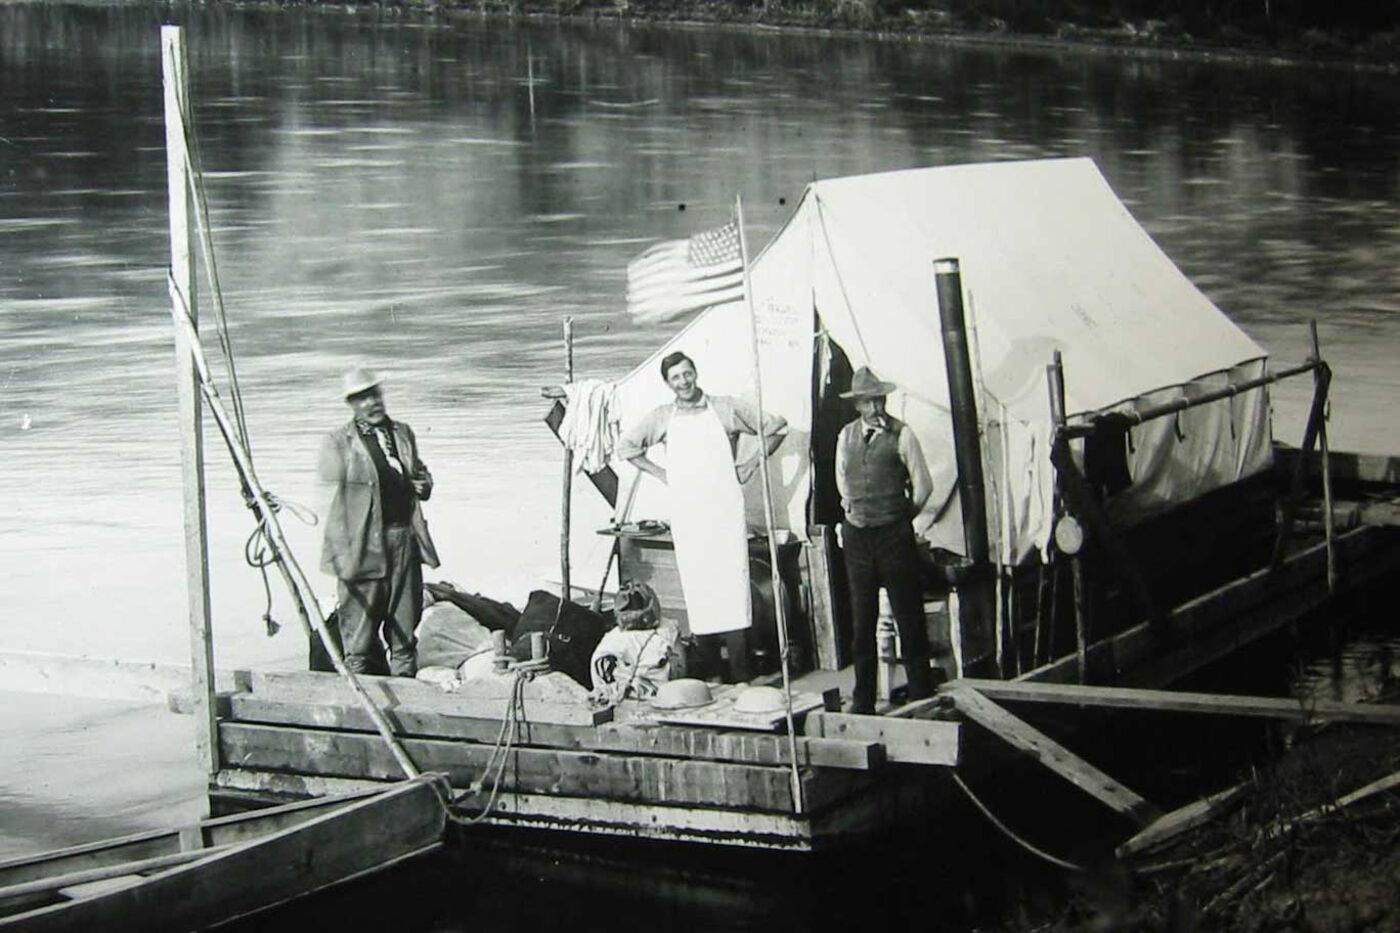 Three men, one wearing an apron, stand on a floating platform that's anchored to land. A tent and an American flag are affixed to the barge.